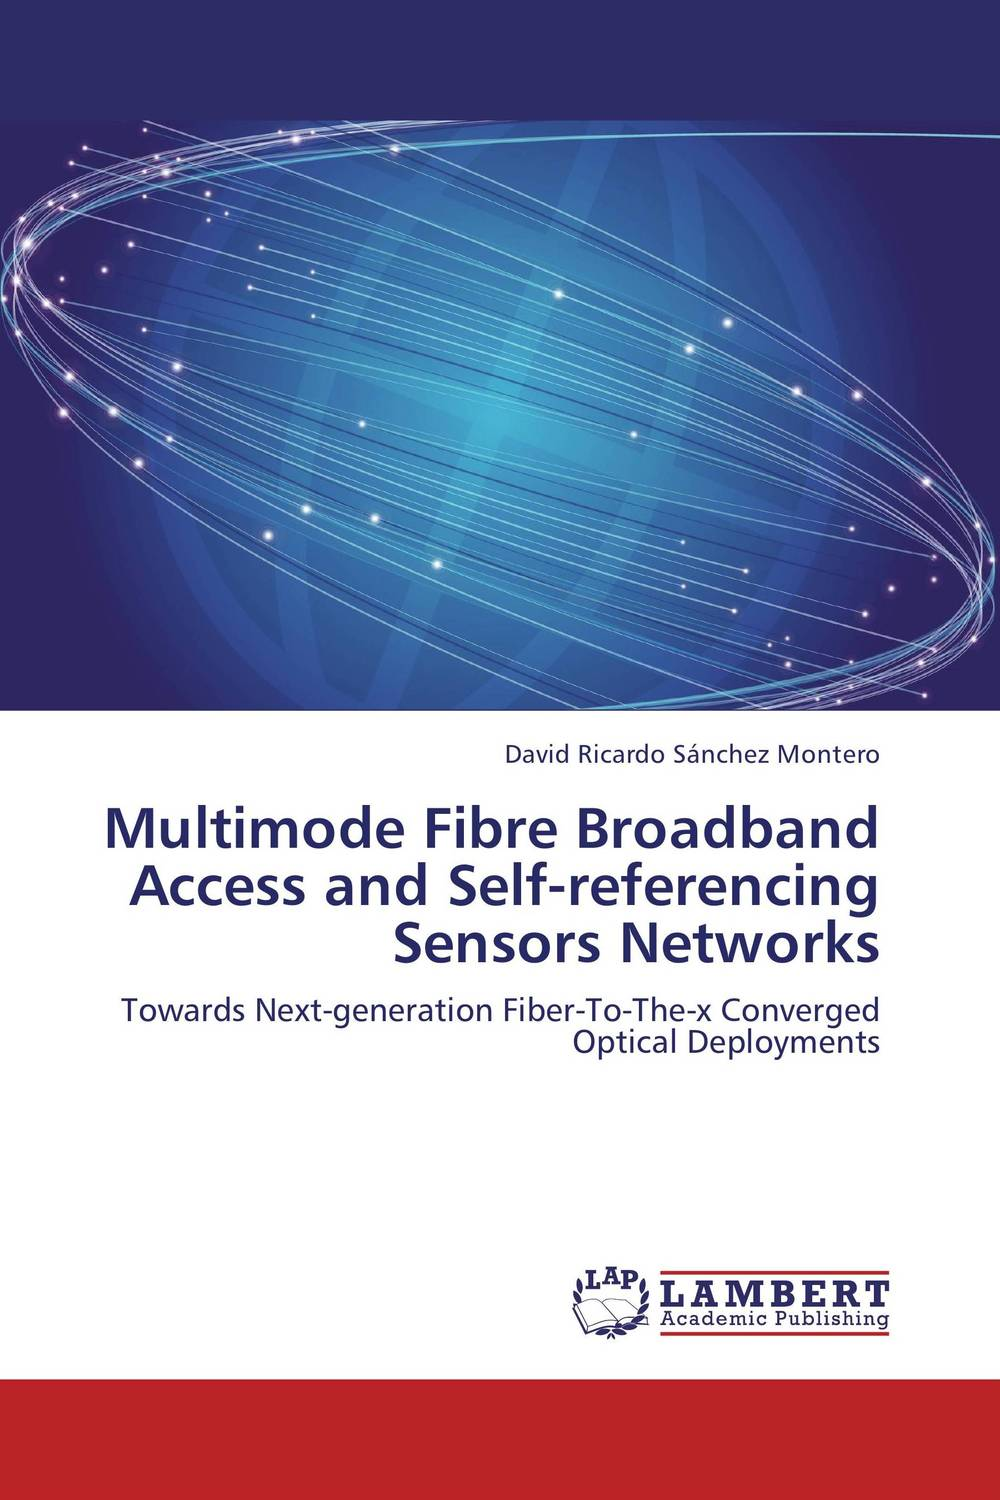 цена Multimode Fibre Broadband Access and Self-referencing Sensors Networks